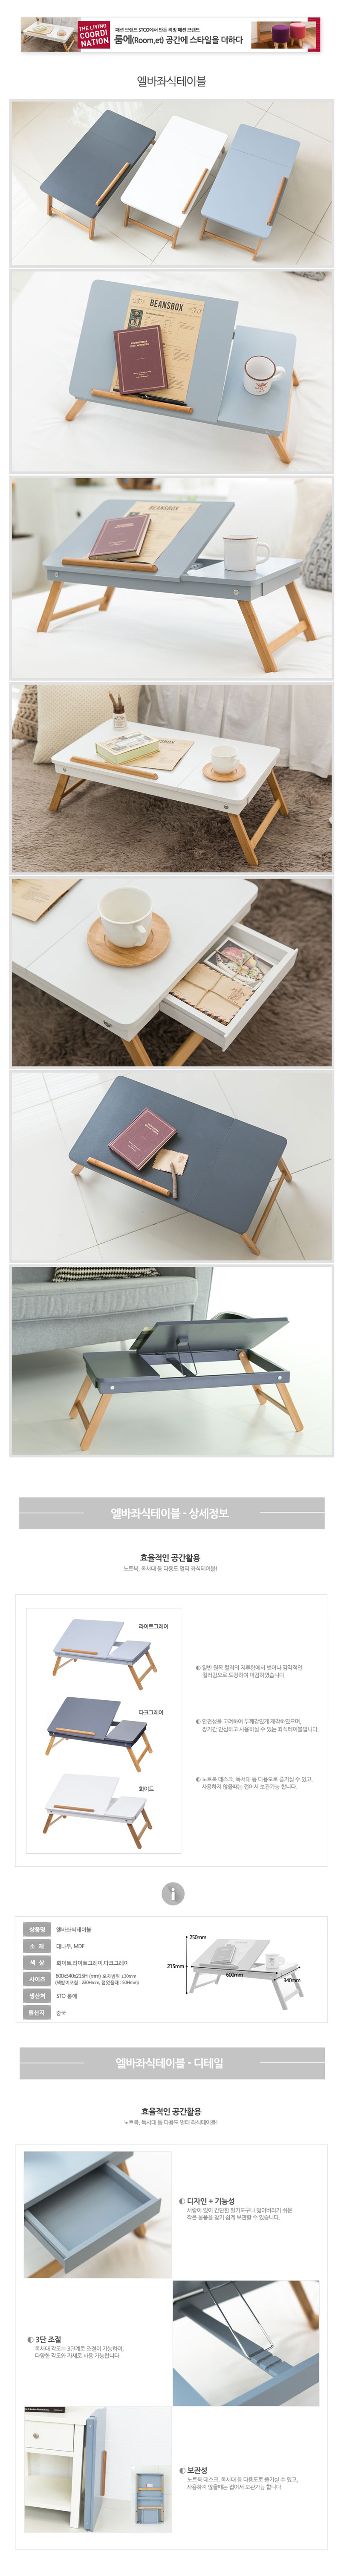 elba seating table bed table 3colorâ book stand step 3 height